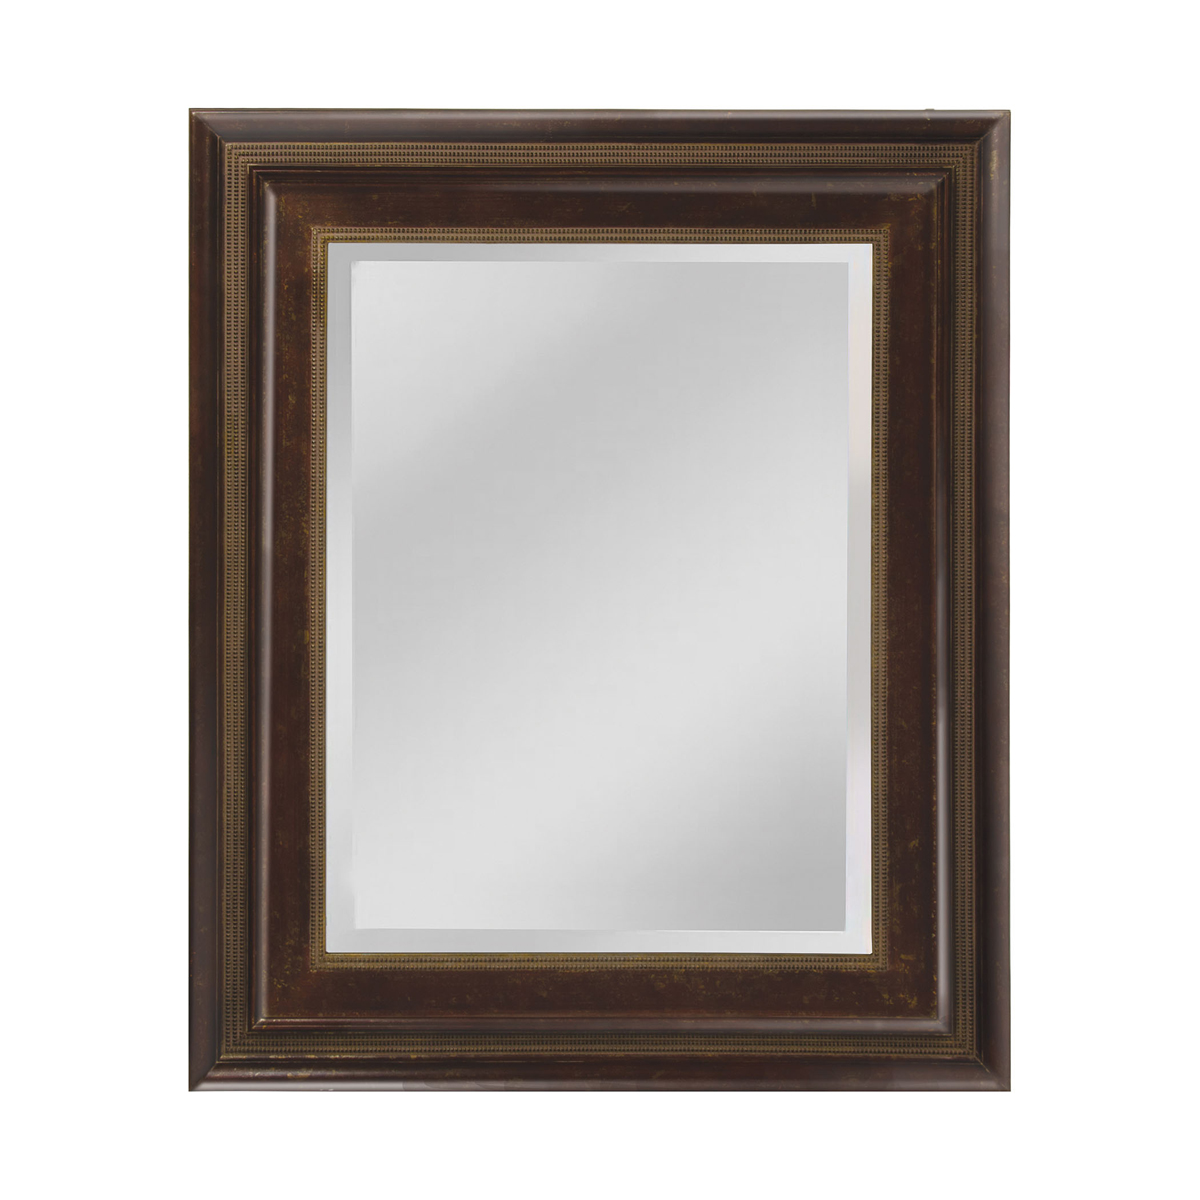 Mirror masters mw4006 0076 trumbull 65 5h x 53 5l for Traditional mirror